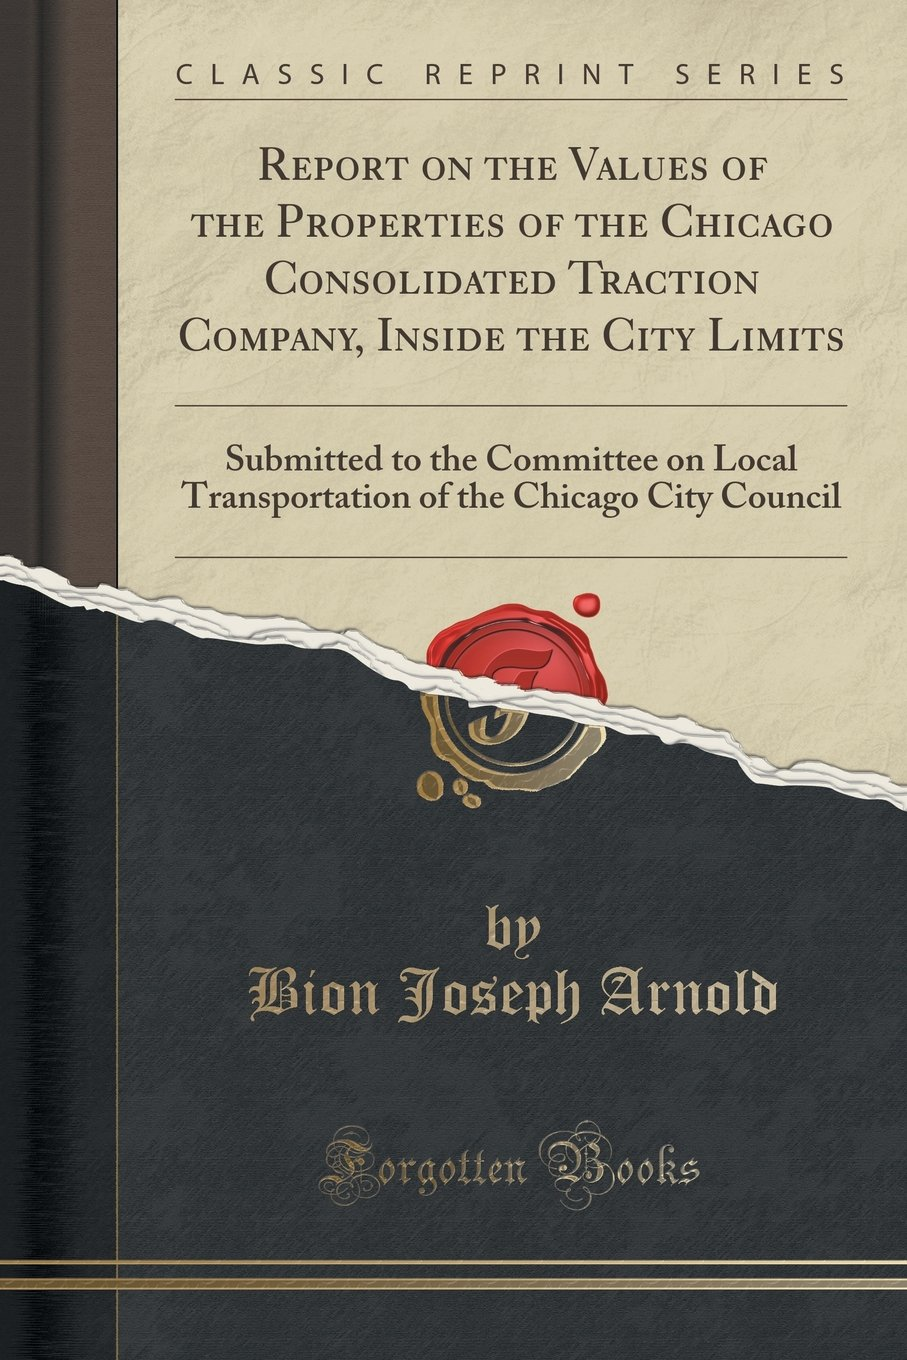 Report on the Values of the Properties of the Chicago Consolidated Traction Company, Inside the City Limits: Submitted to the Committee on Local ... of the Chicago City Council (Classic Reprint) PDF